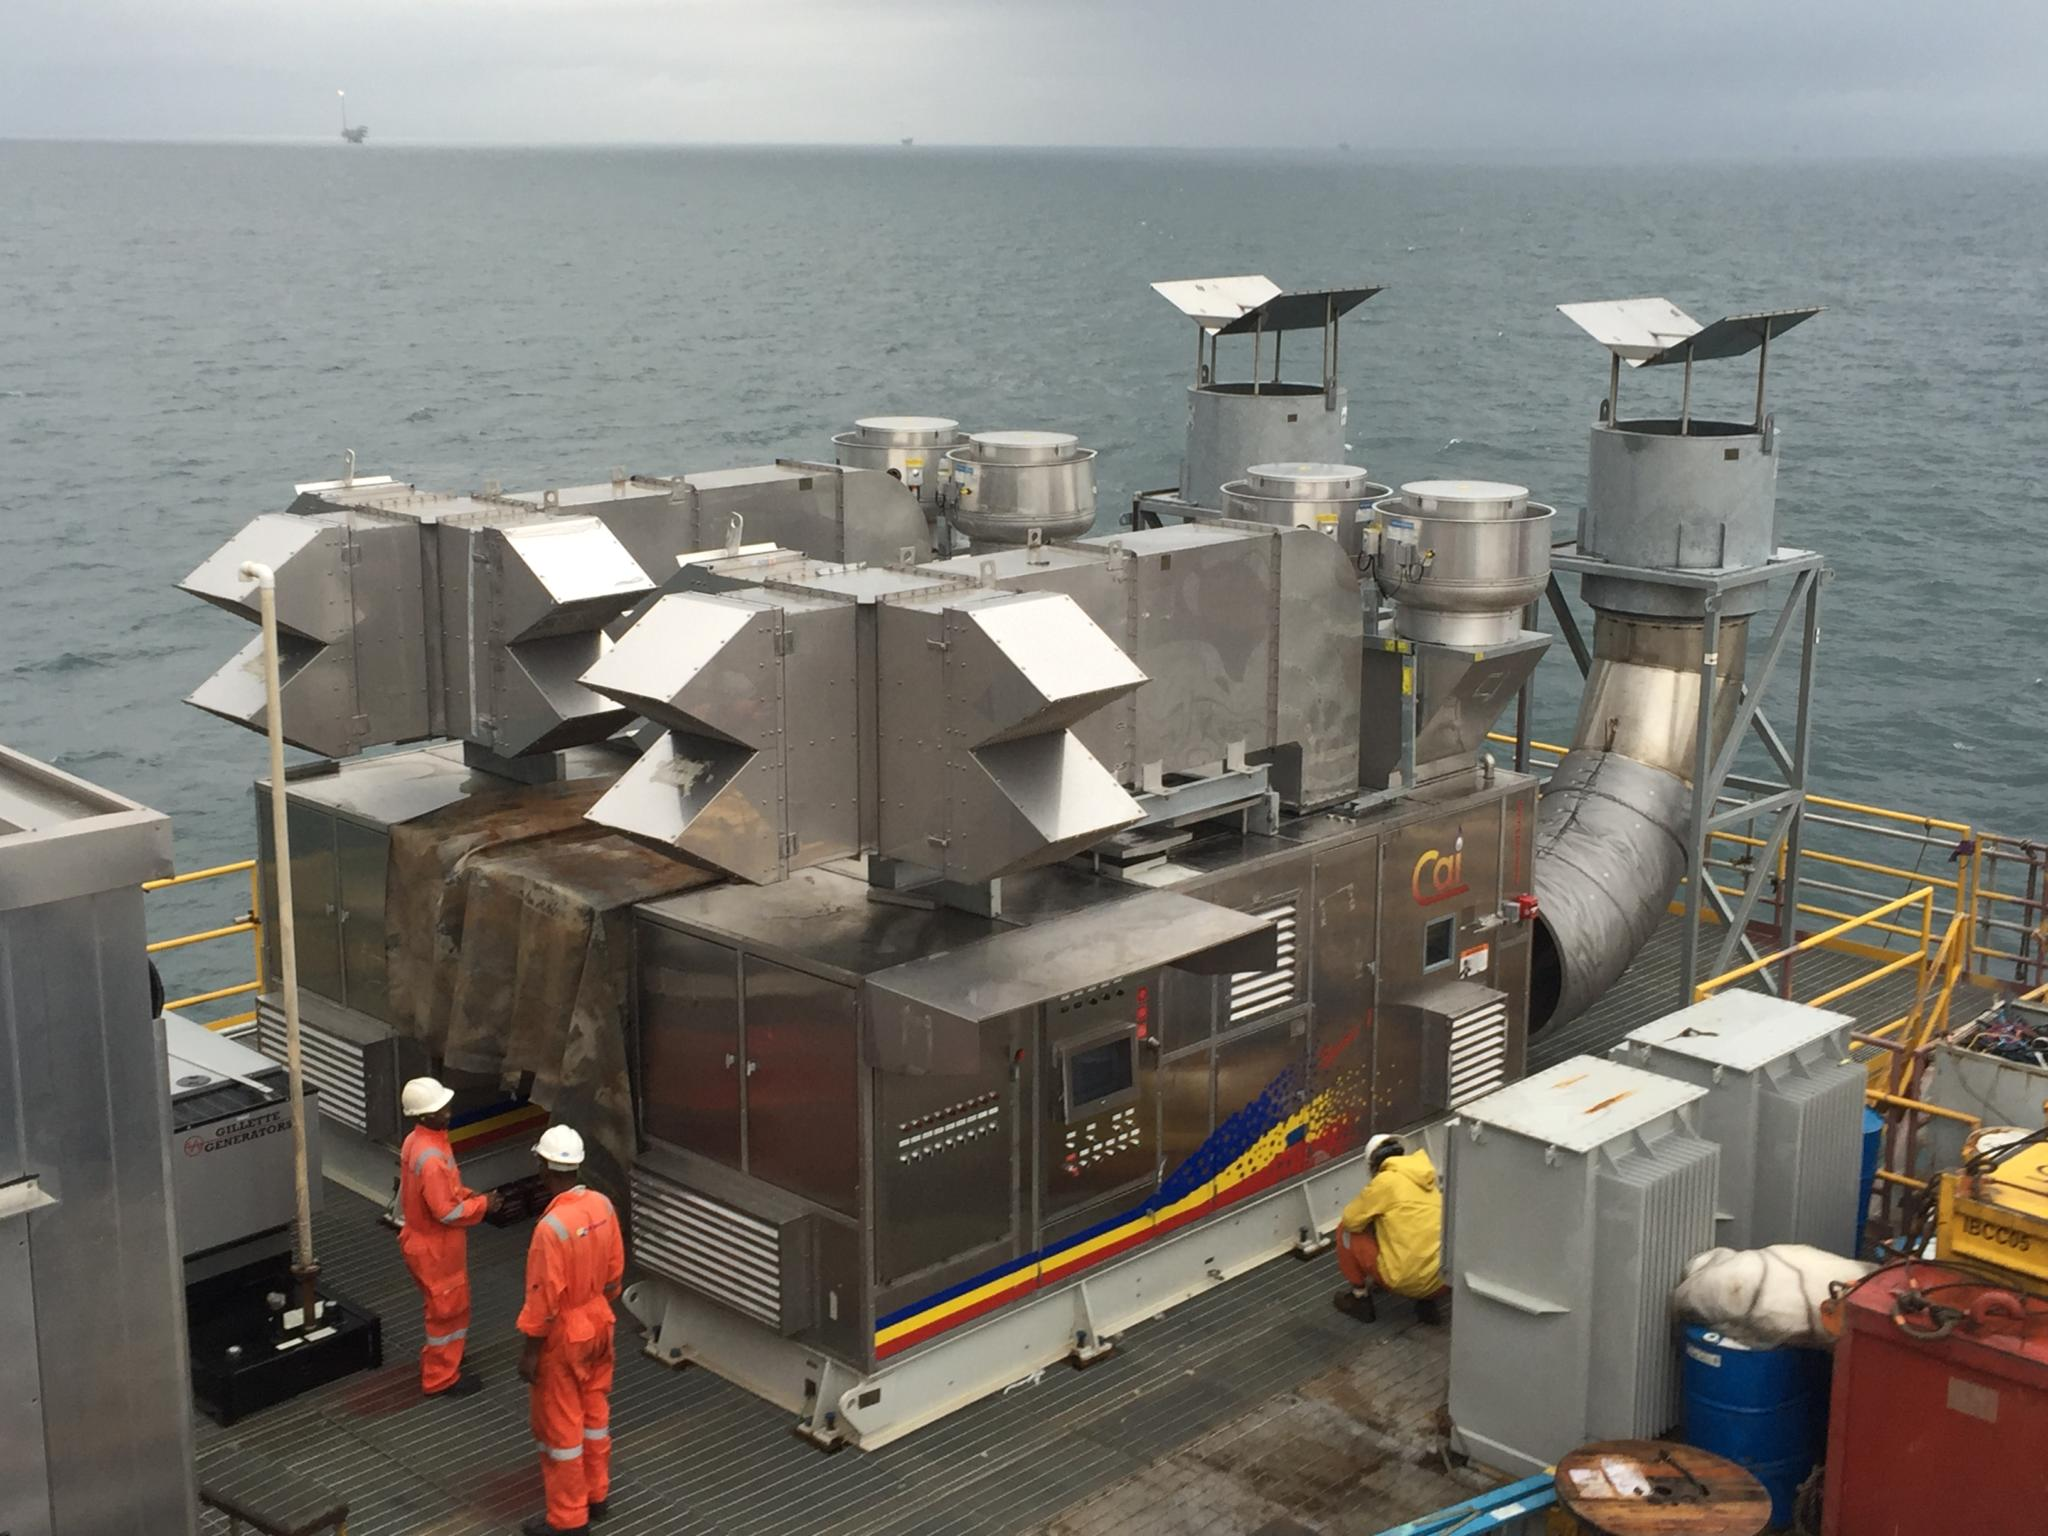 CAI's Off-Shore Platforms Power Generation Systems